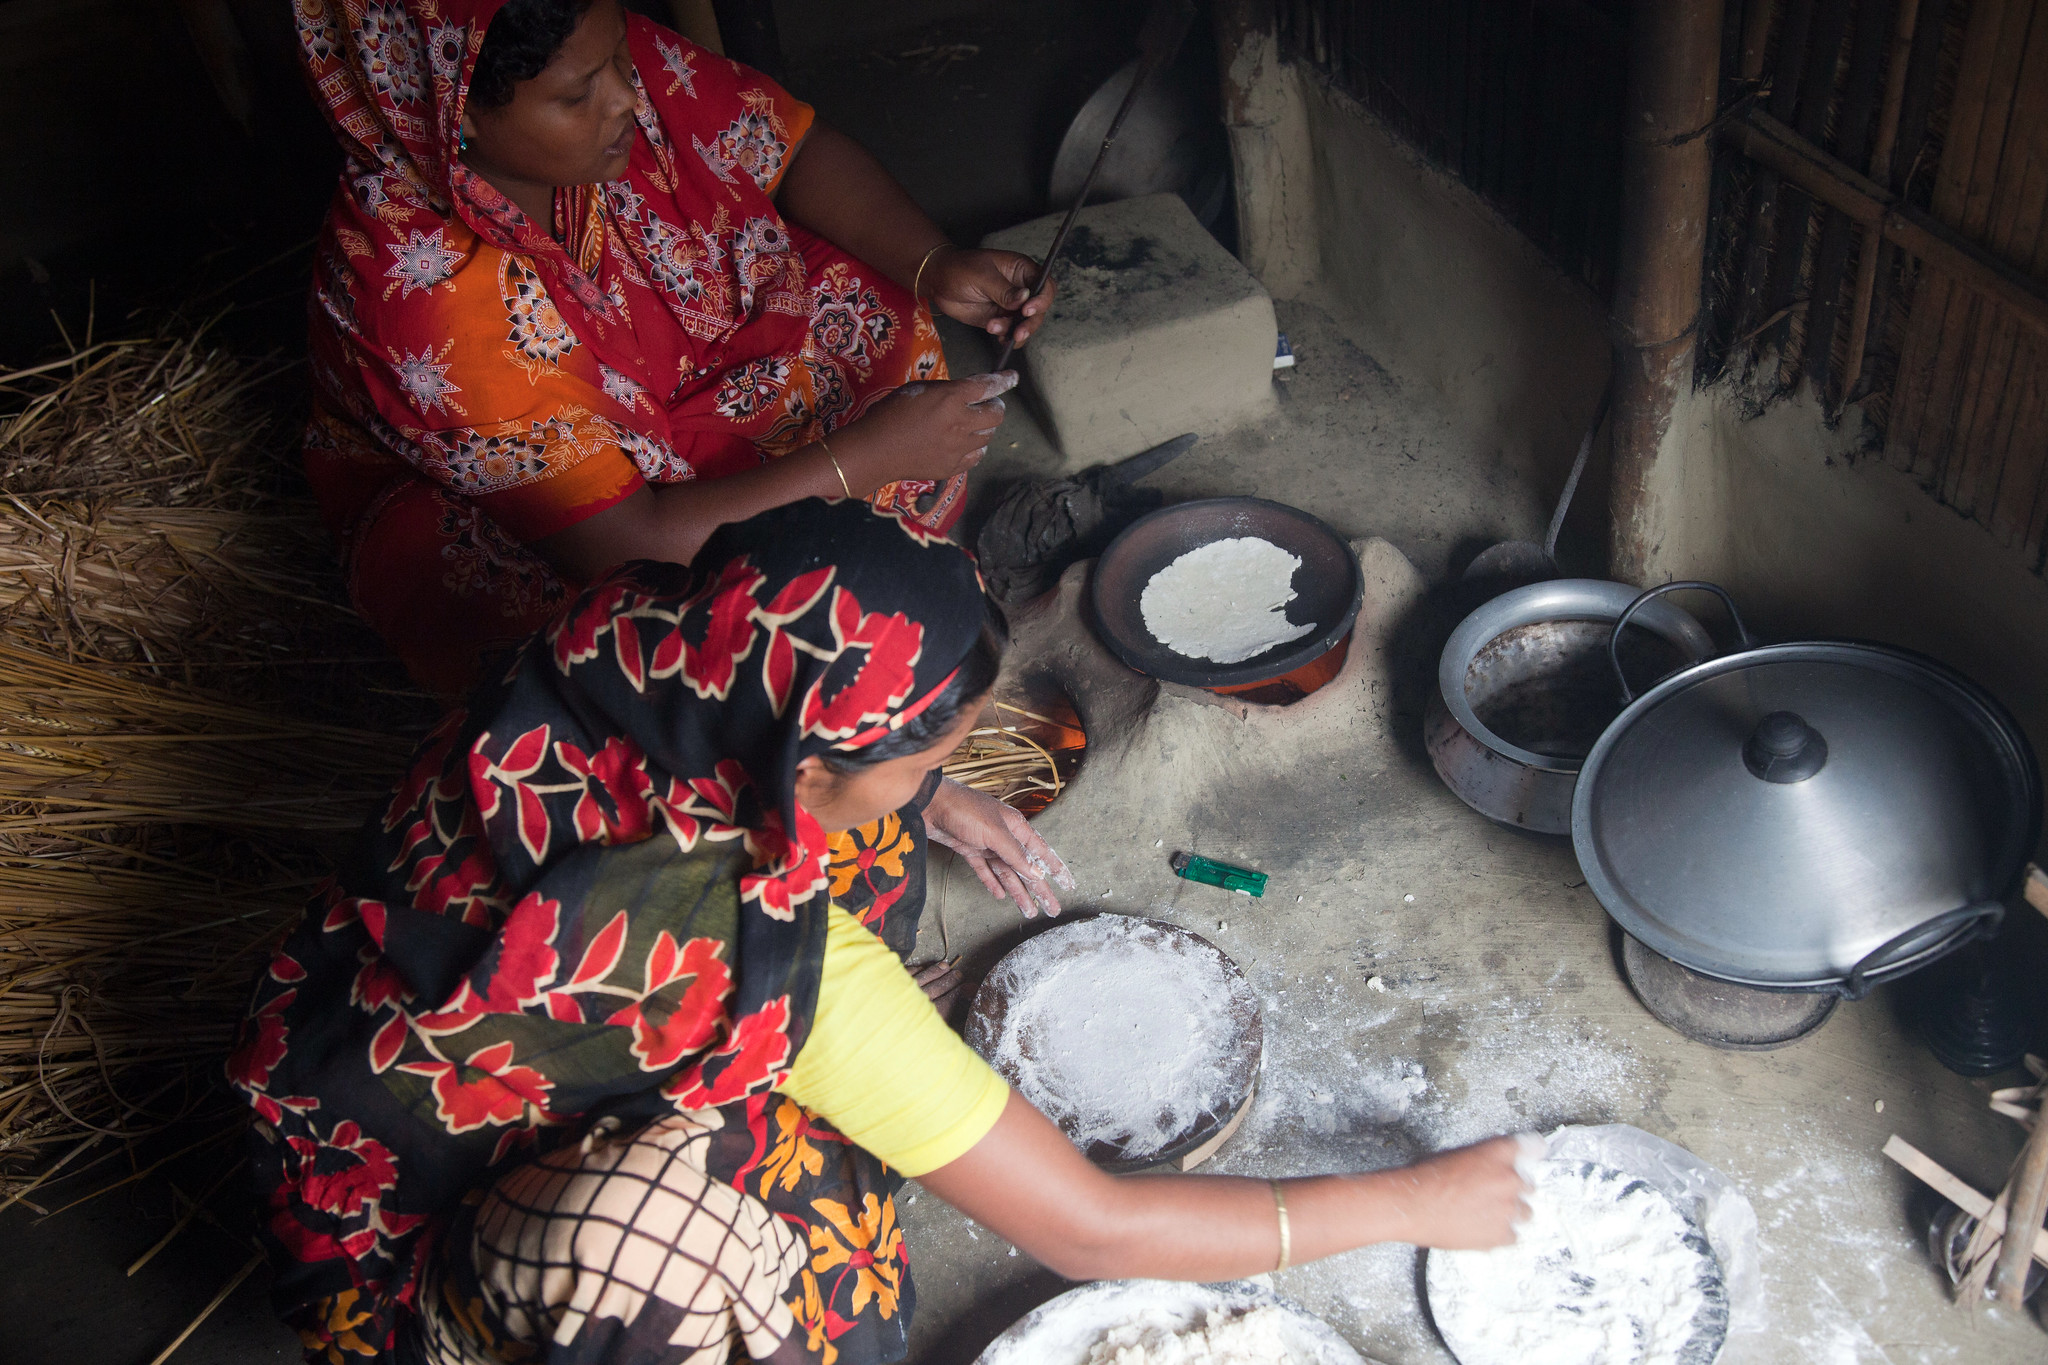 Women make roti, an unleavened flatbread made with wheat flour and eaten as a staple food, at their home in the Dinajpur district, Bangladesh. (Photo: S. Mojumder/Drik/CIMMYT)